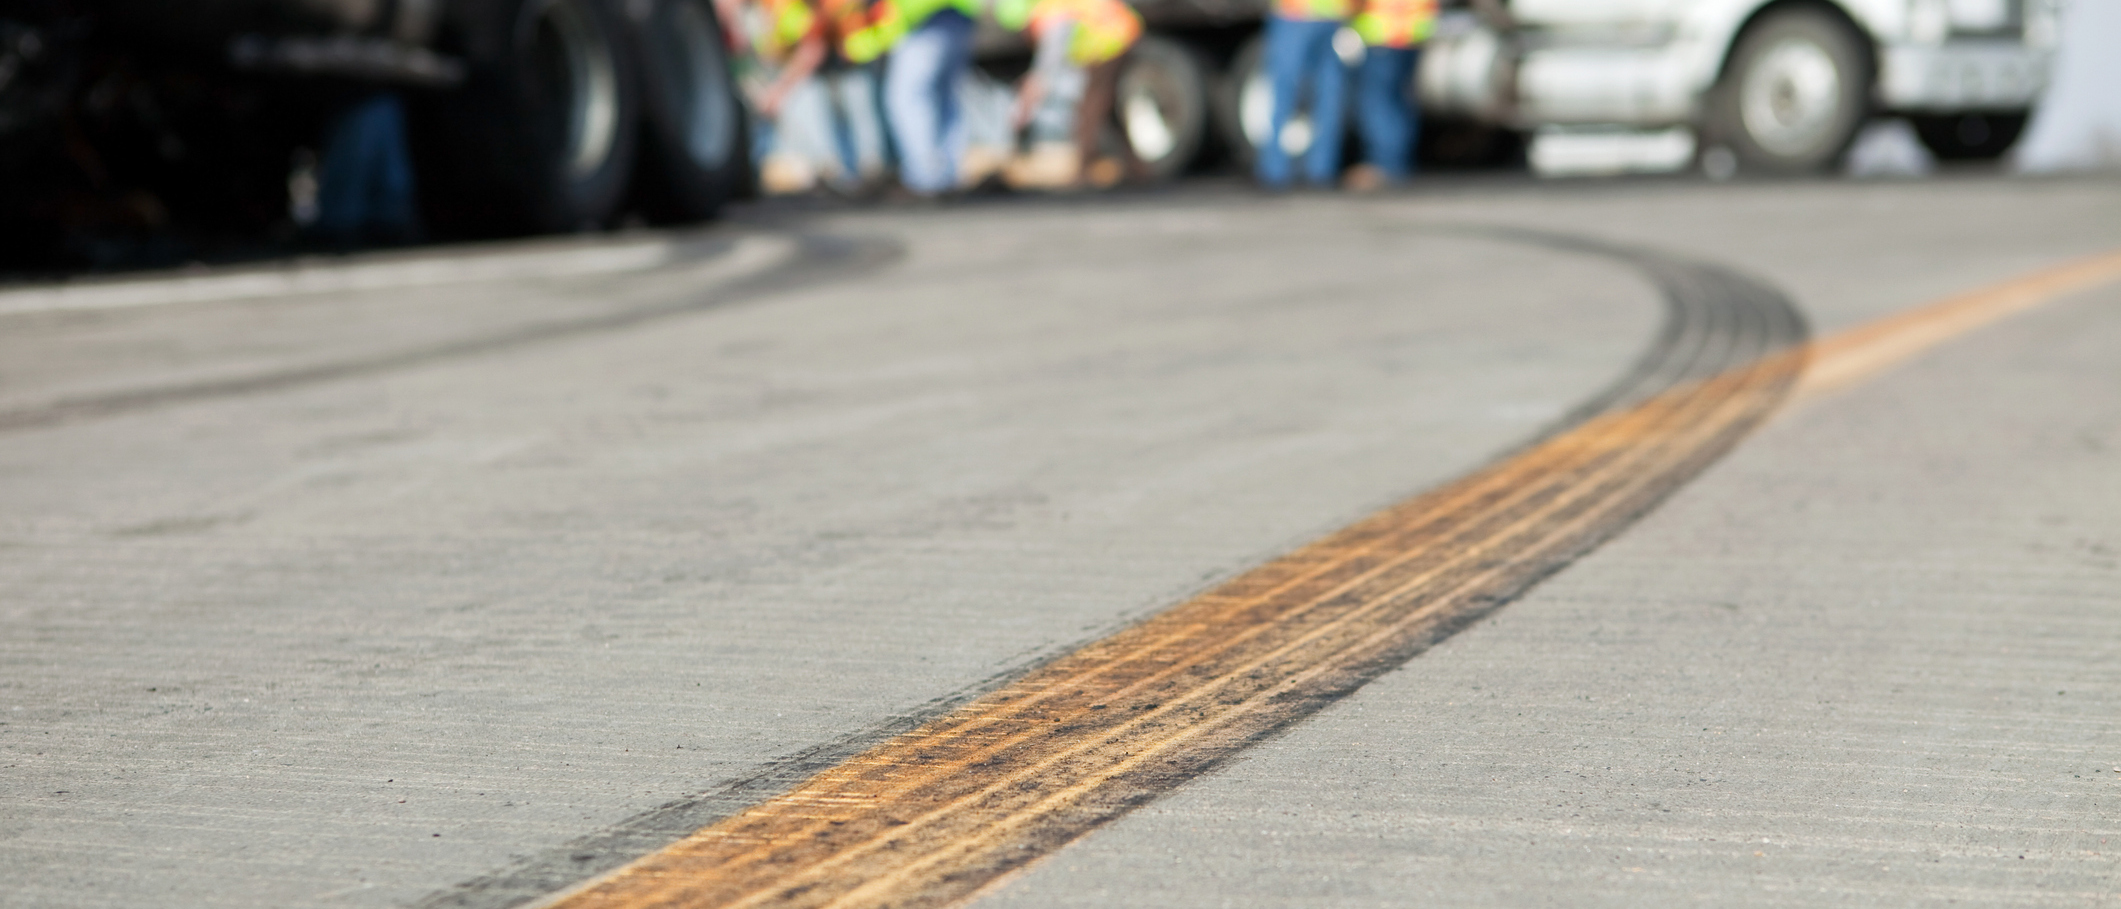 skid marks on the road following truck collision